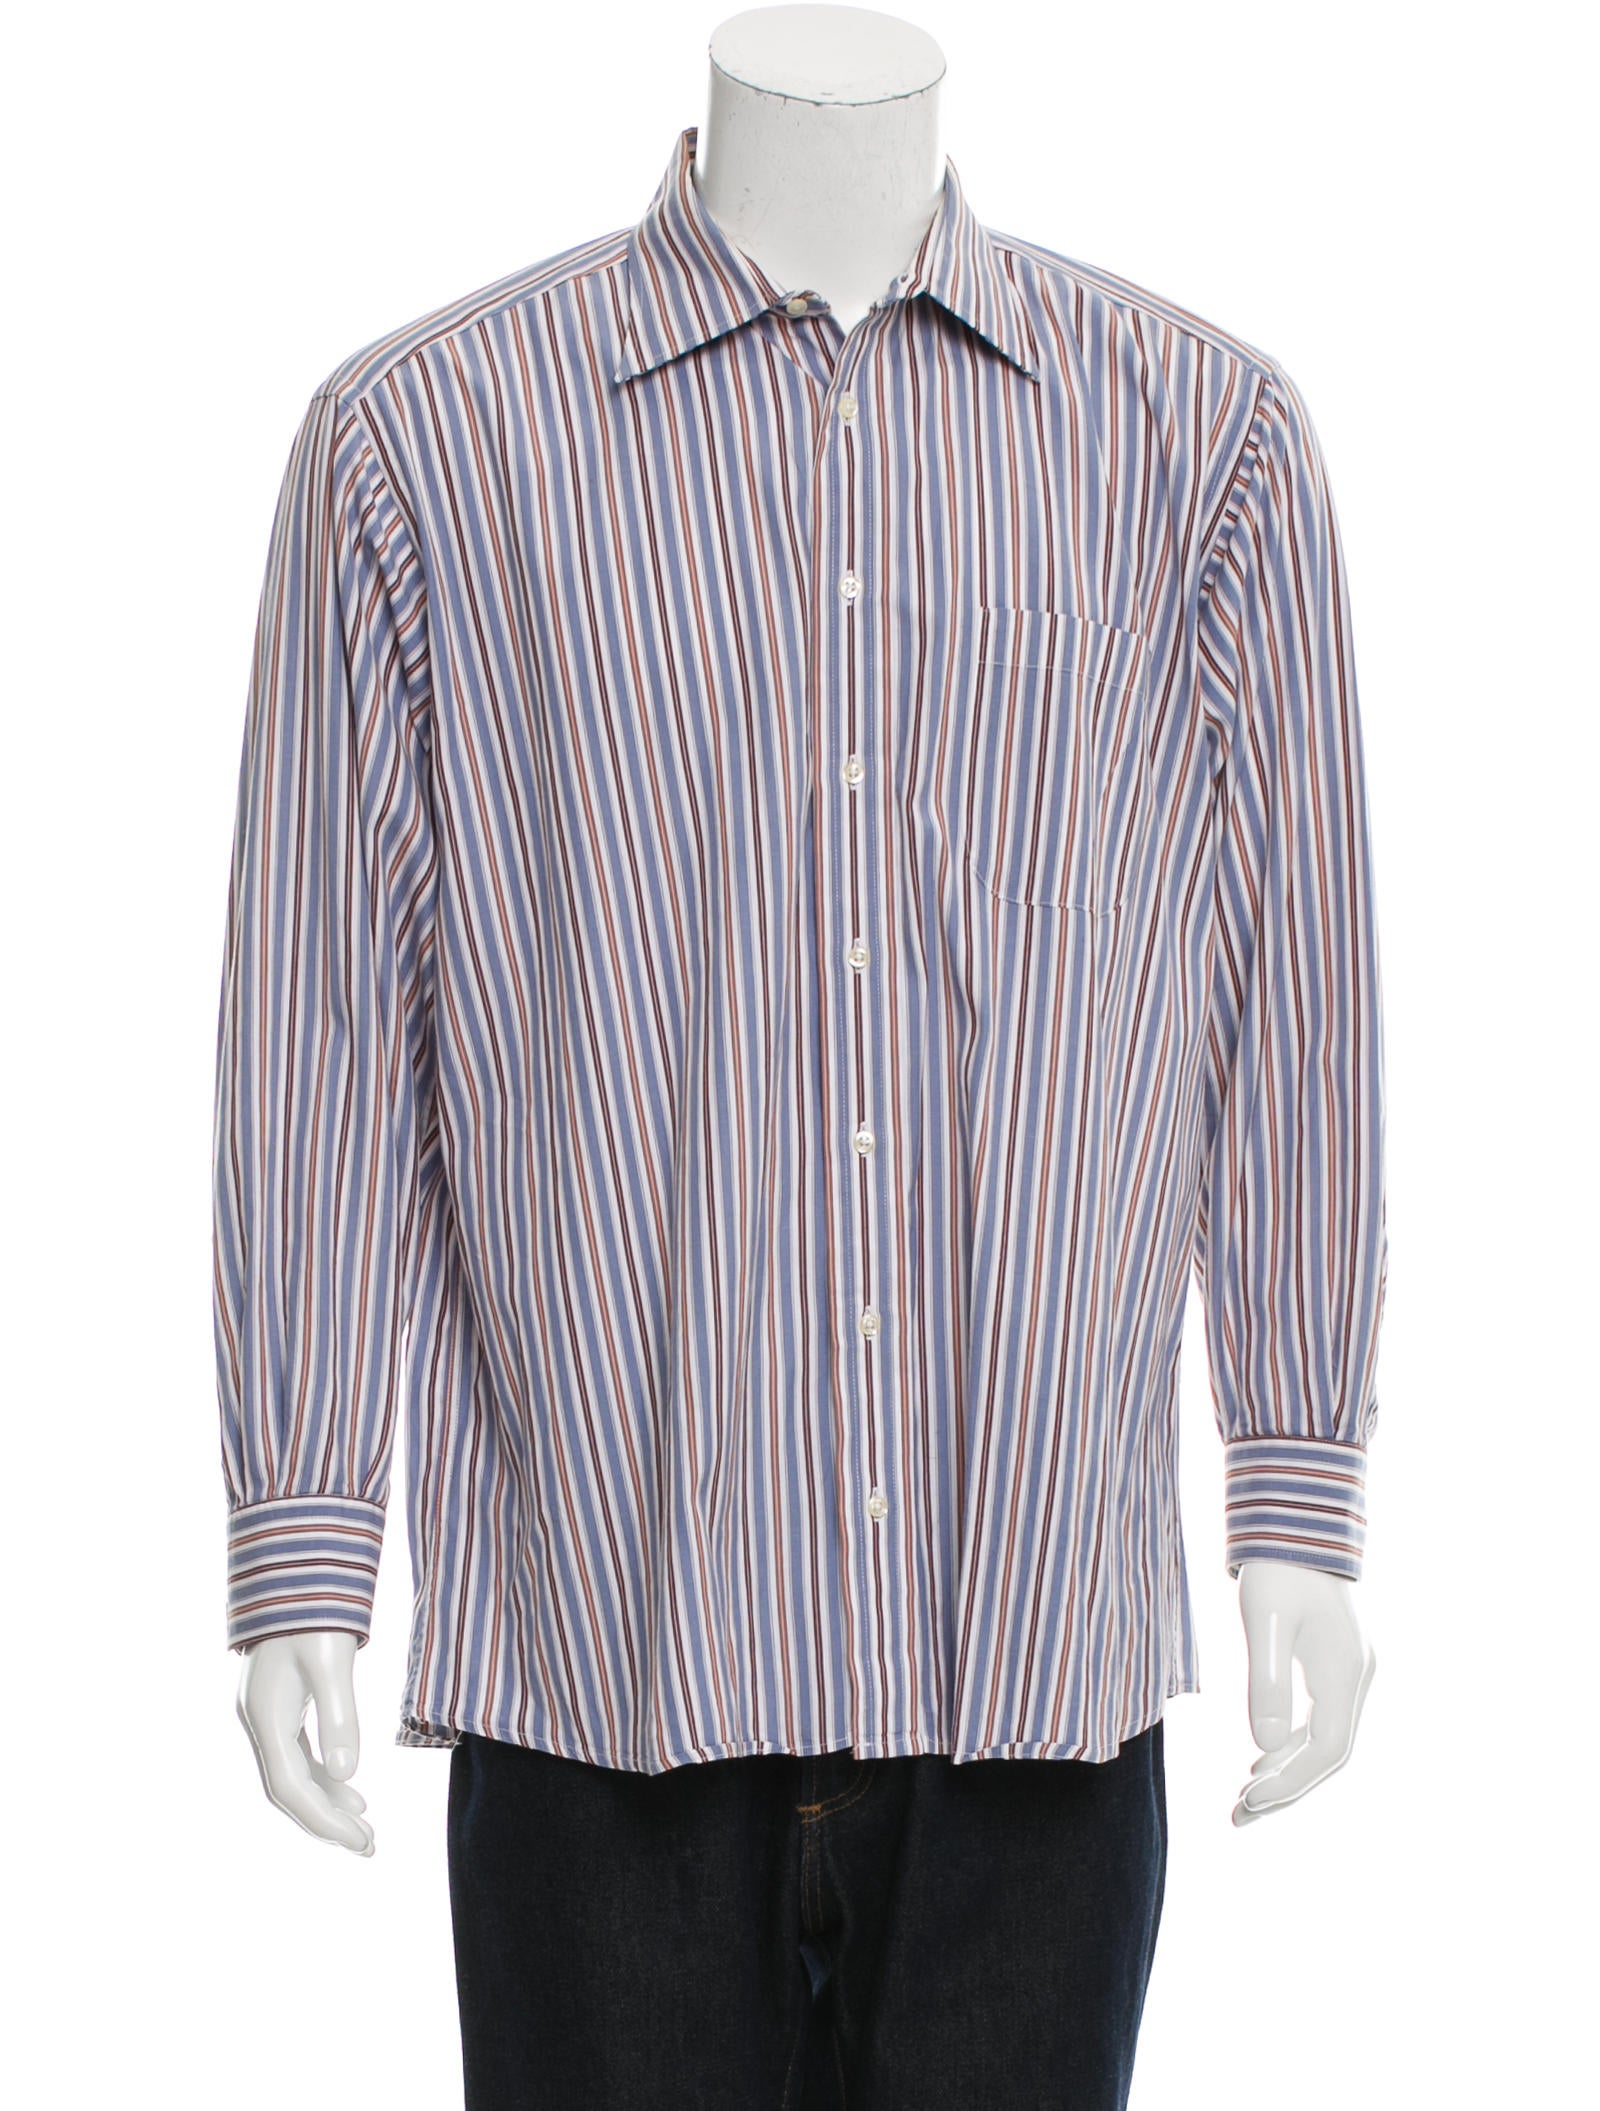 Burberry London Striped Button Up Shirt Clothing